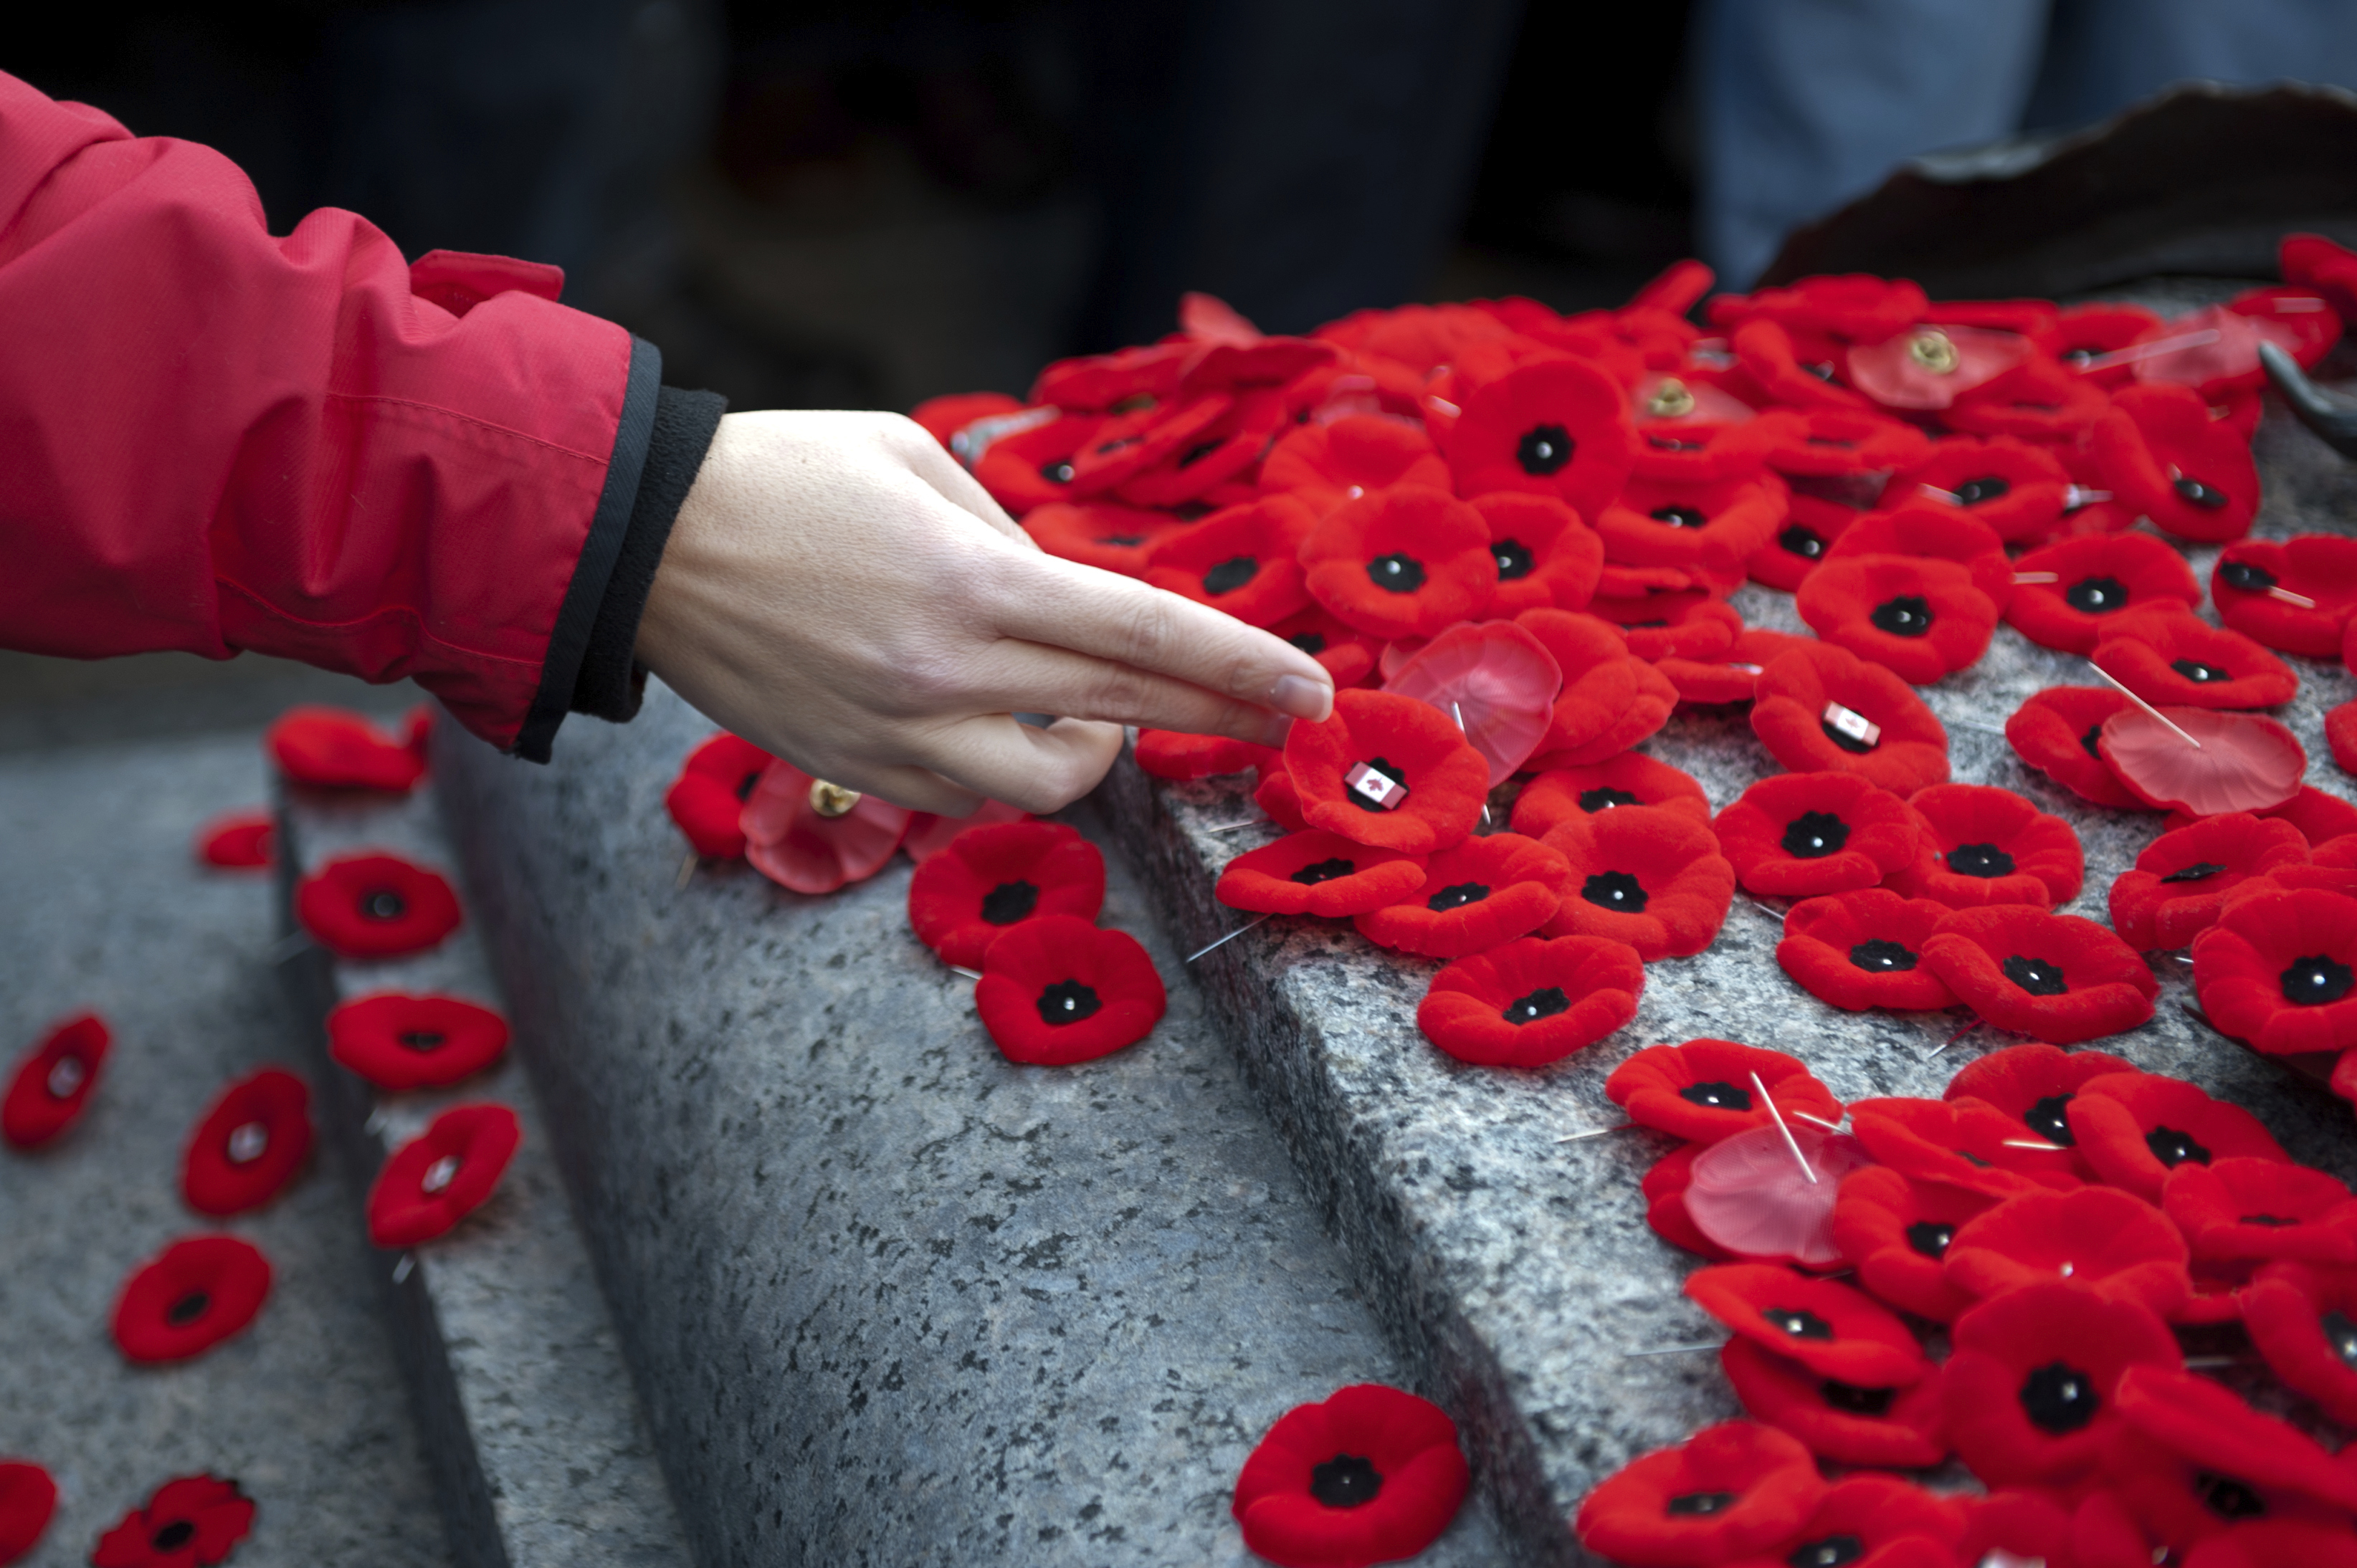 Why We Wear Poppies On Remembrance Day